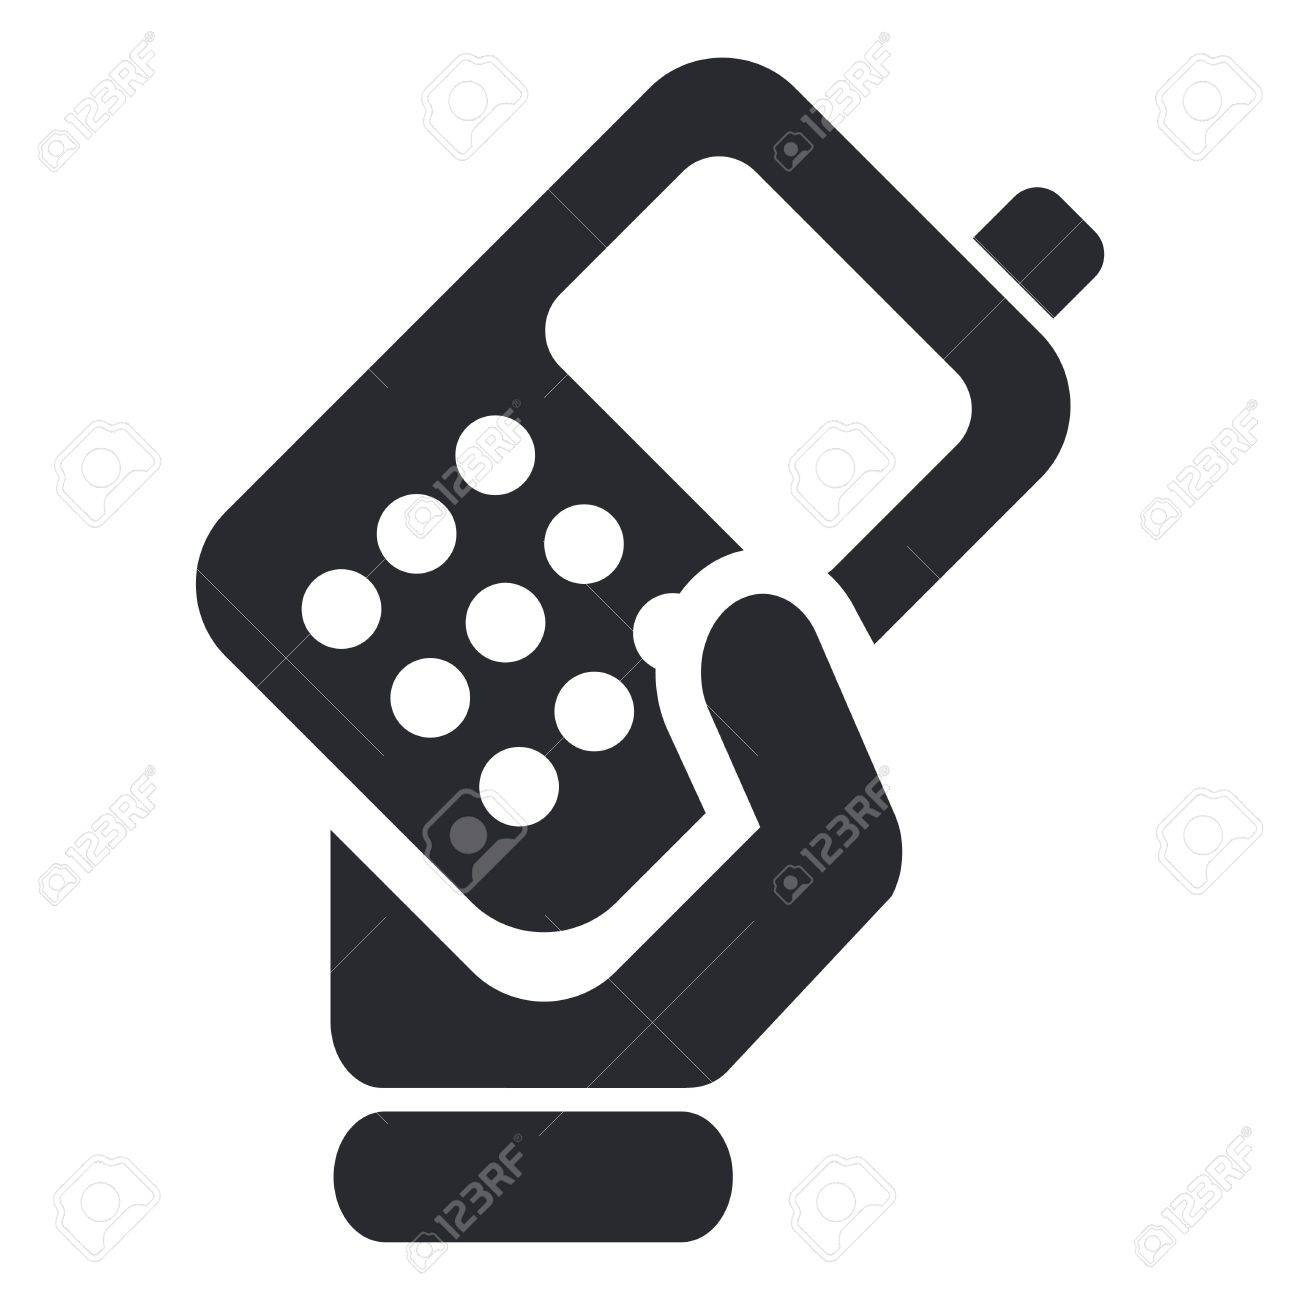 Vector illustration of single isolated phone handing icon Stock Vector - 12124536